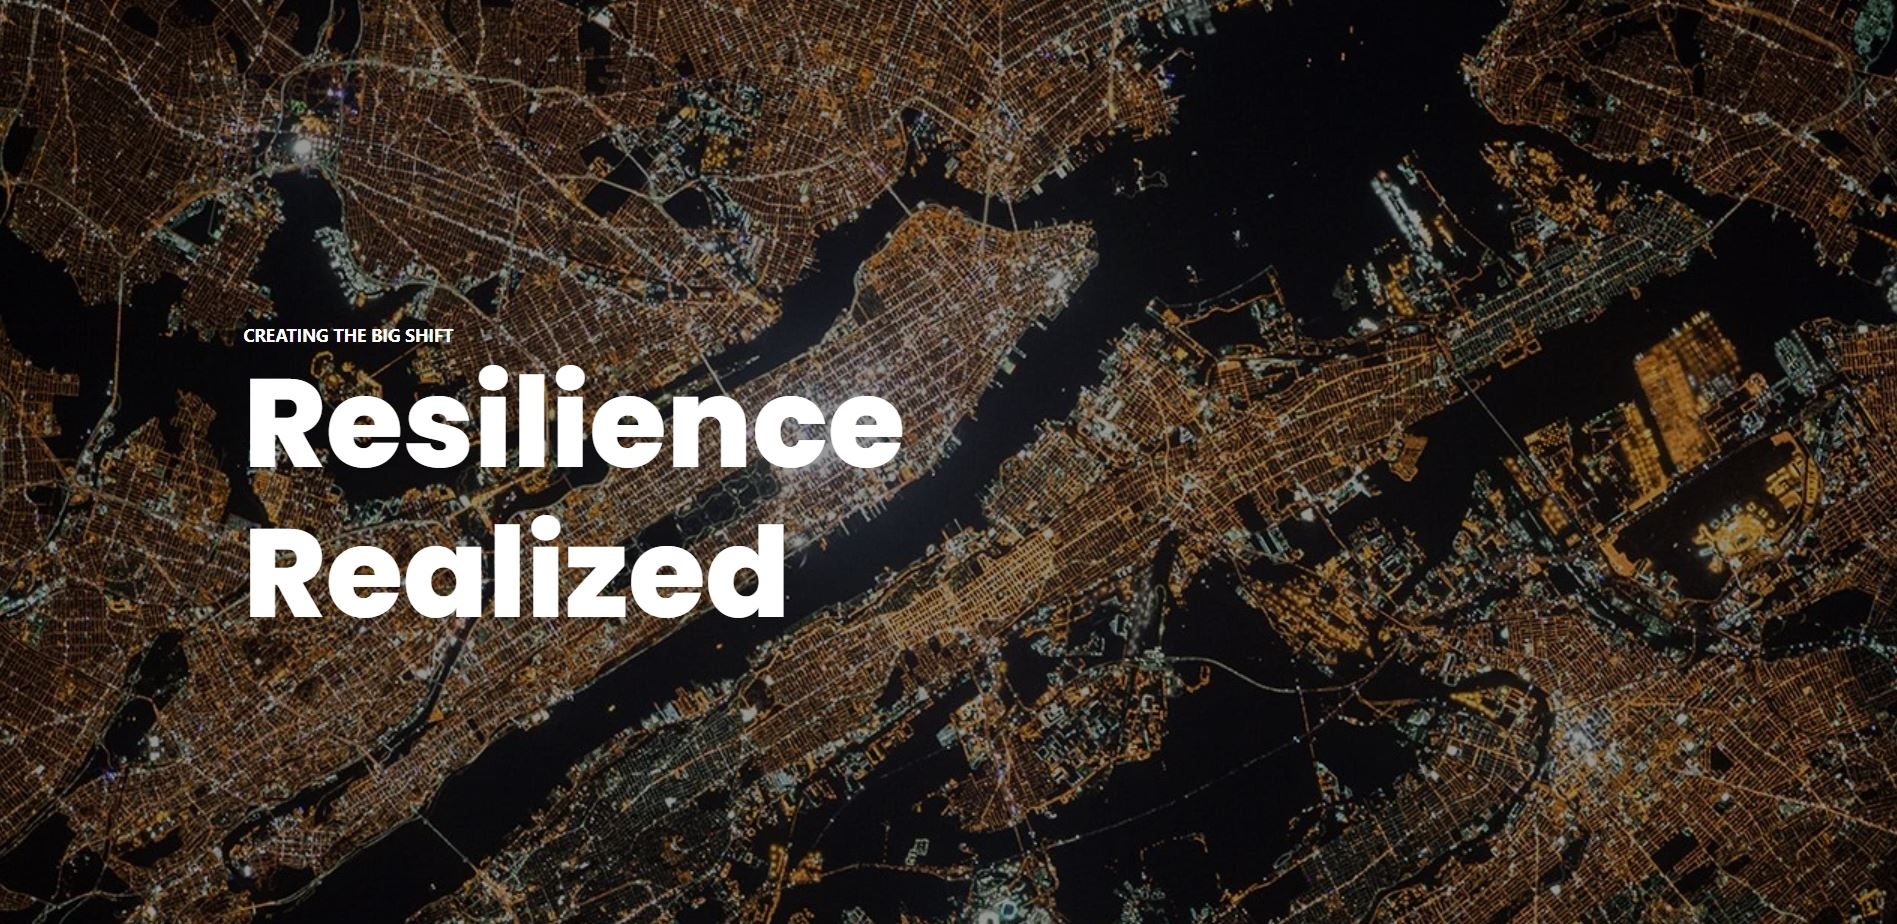 Resilience Realized